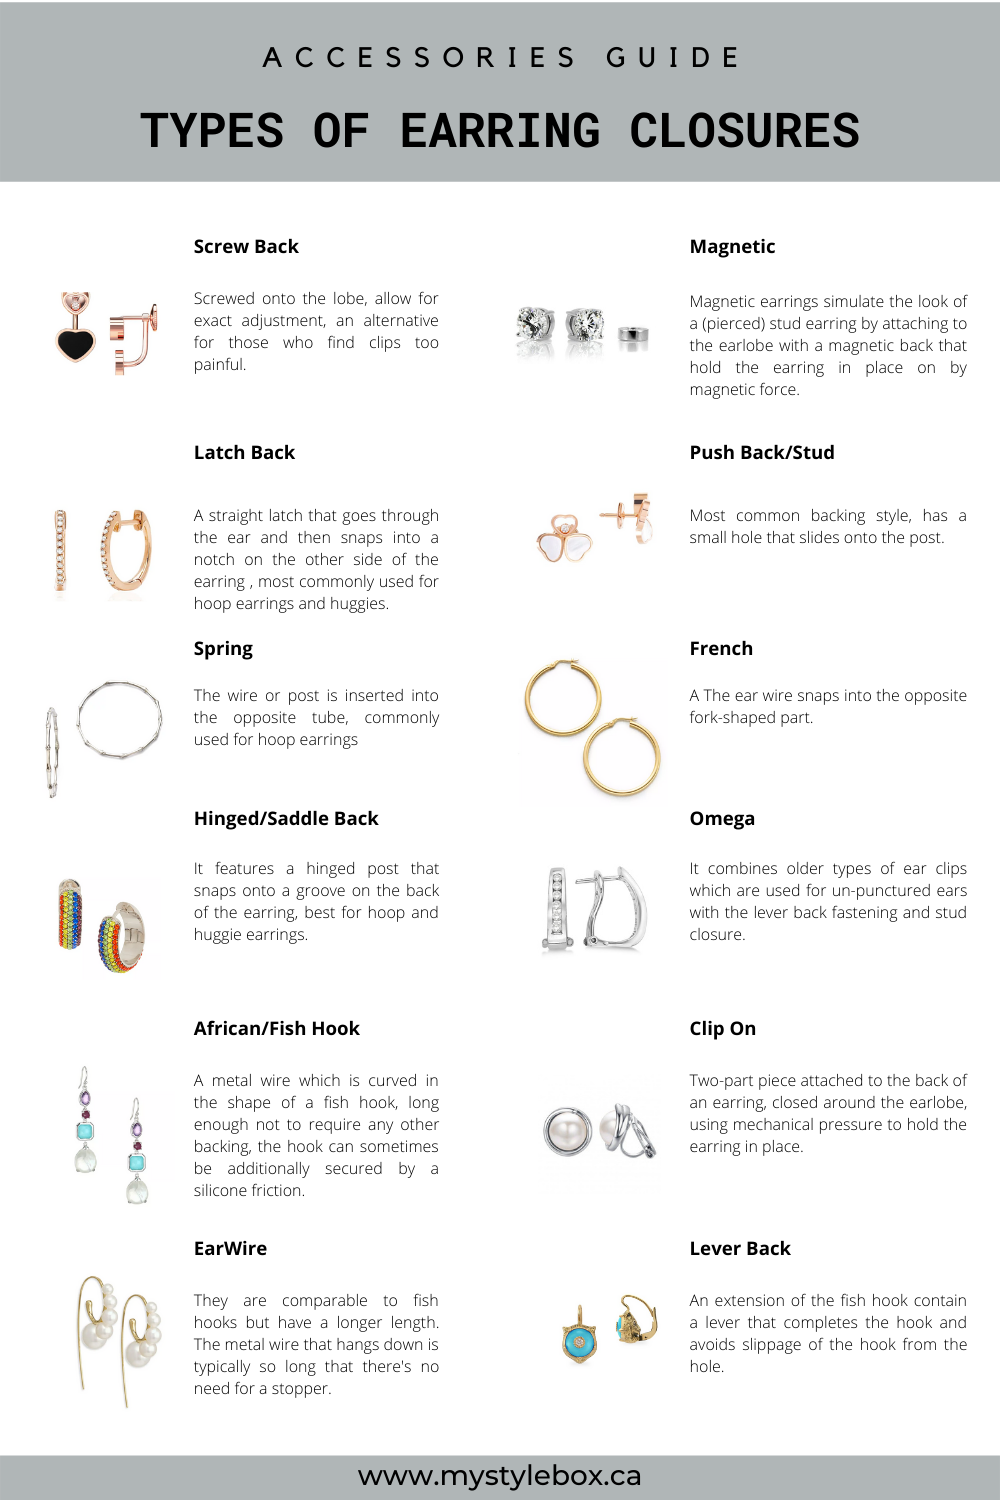 Types of Earring Closures